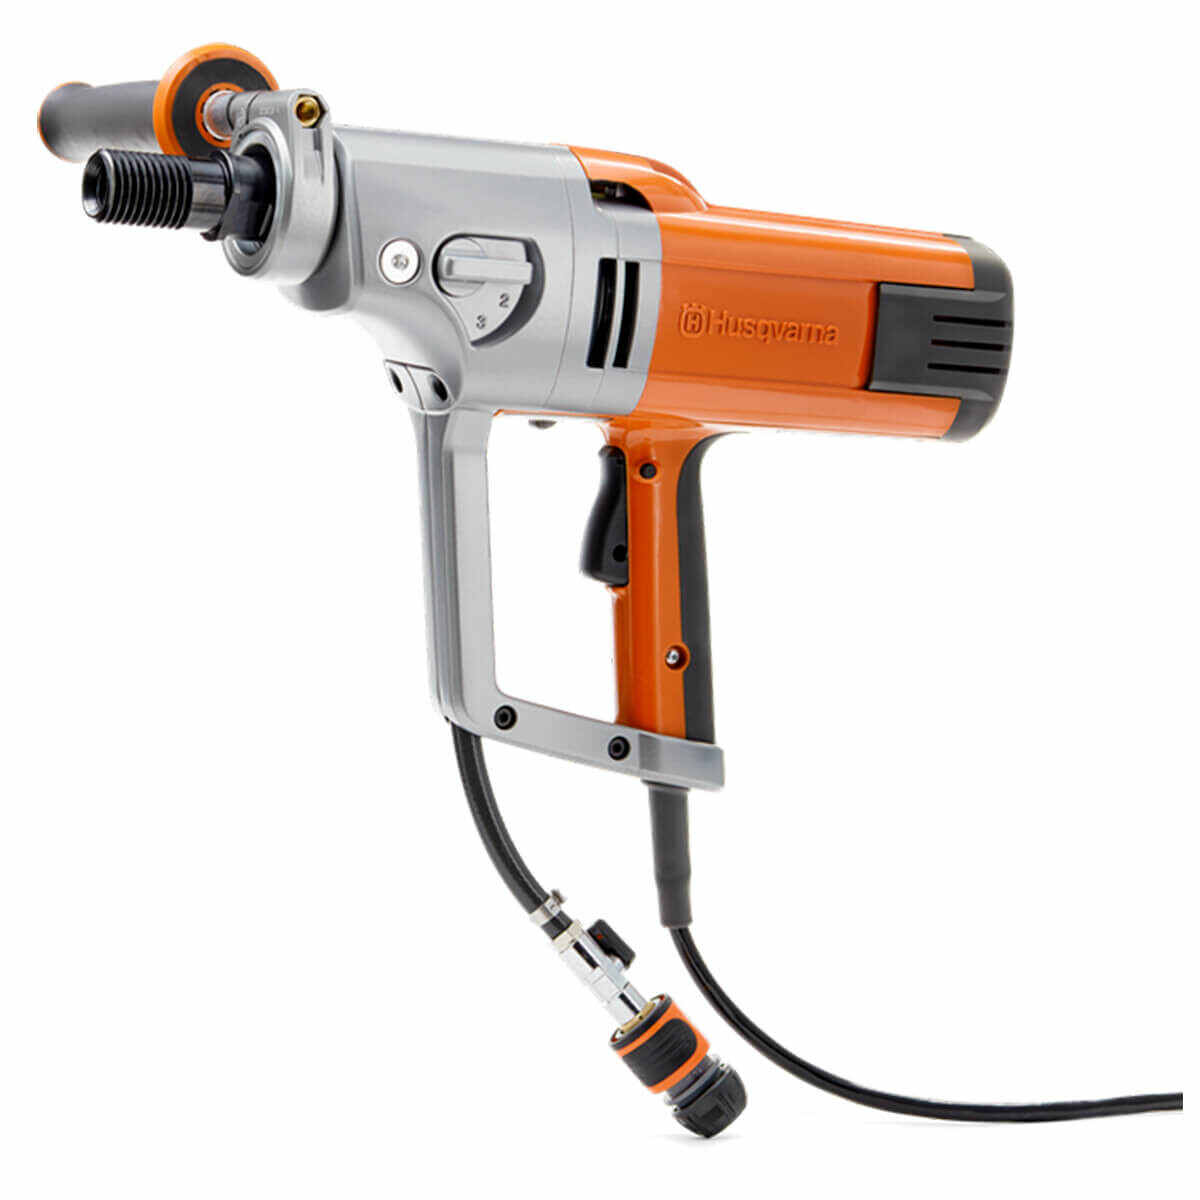 Husqvarna DM230 Hand Held Core Drill